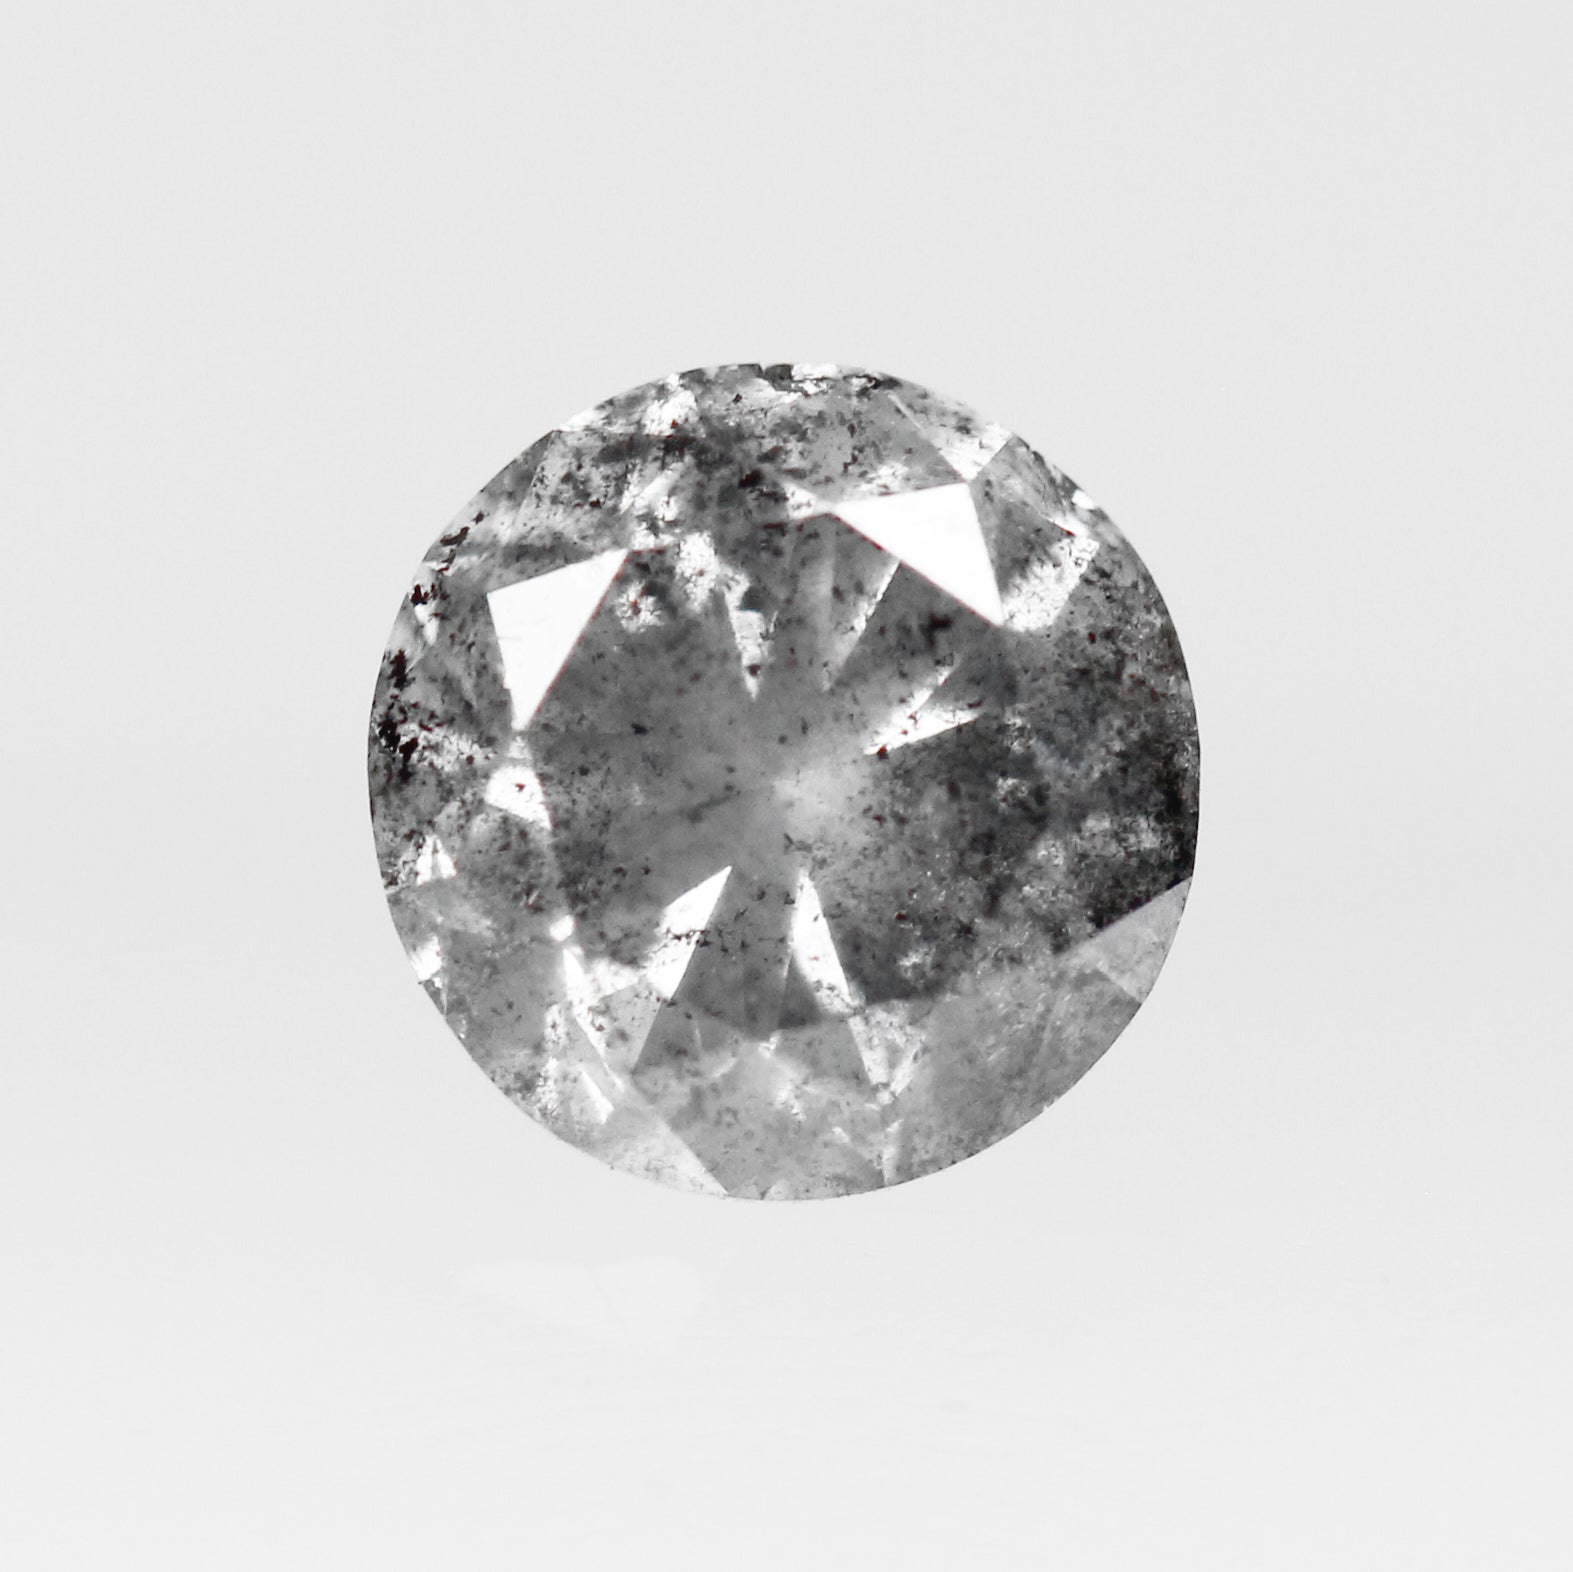 .84 Carat Round Celestial Diamond for Custom Work- Inventory Code RBCG84 - Celestial Diamonds ® by Midwinter Co.